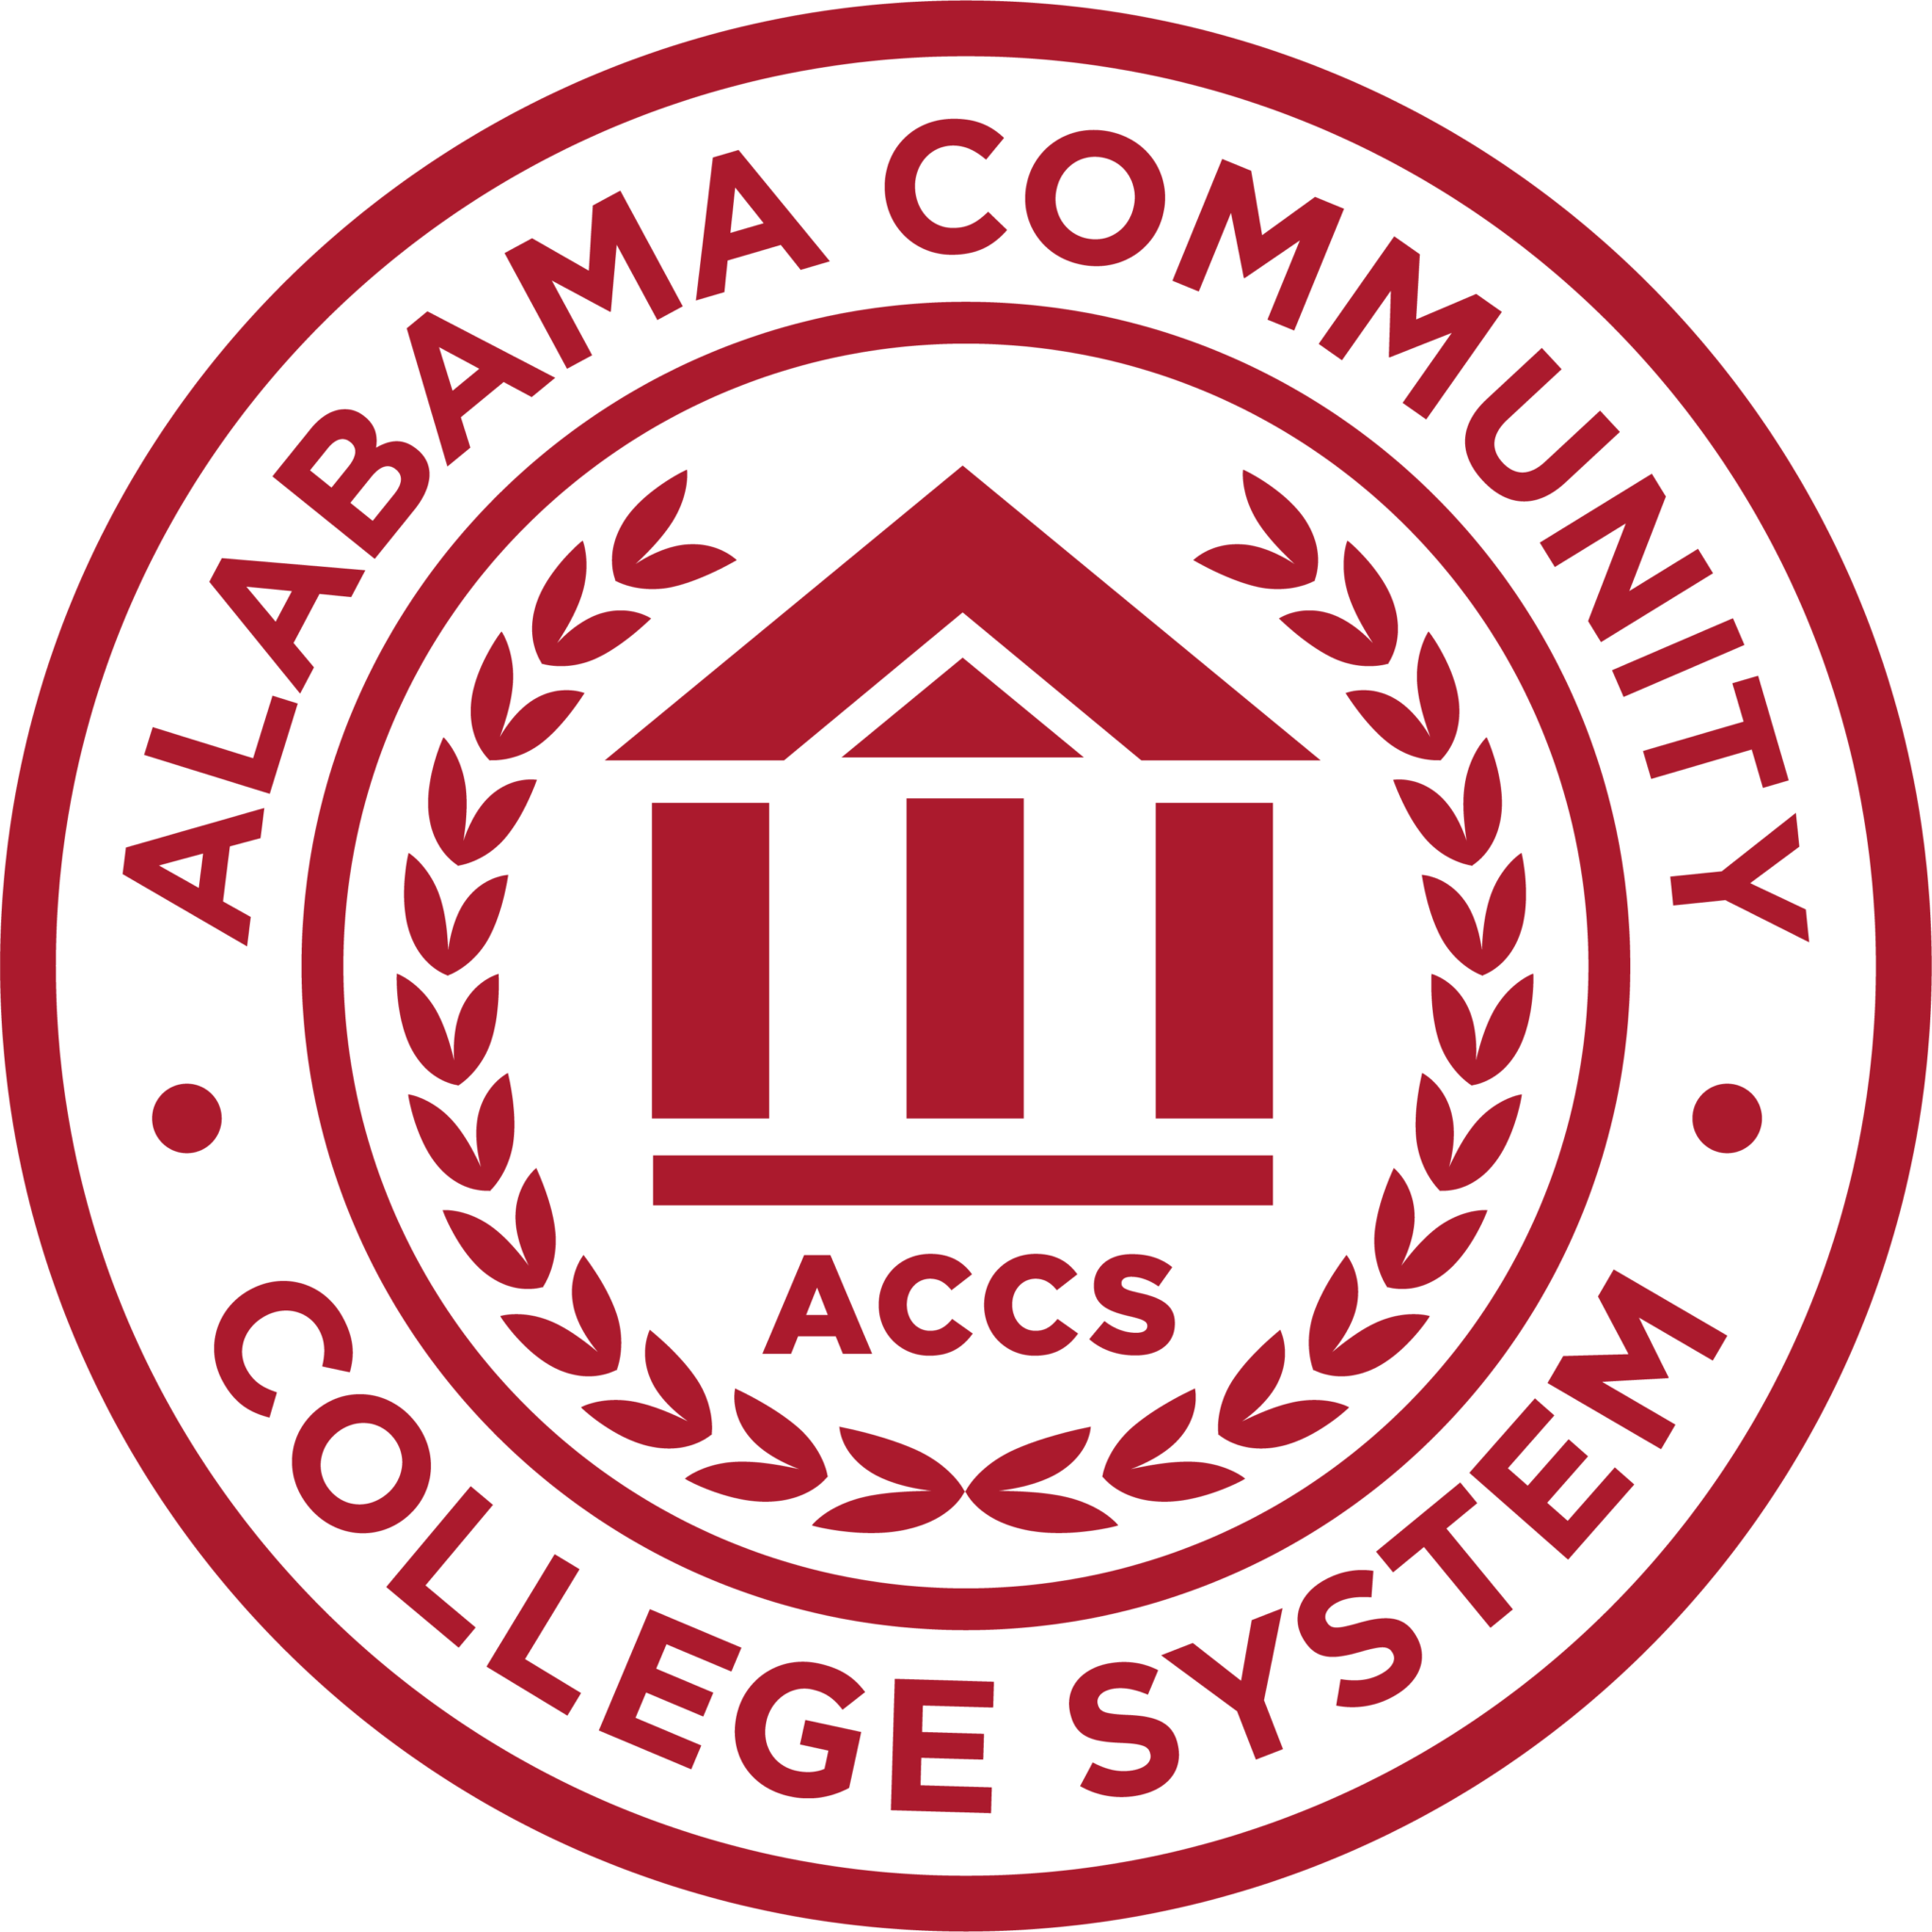 ALABAMA COMMUNITY COLLEGE SYSTEM TO TEMPORARILY DISCONTINUE ON-CAMPUS INSTRUCTION MARCH 17 – APRIL 3